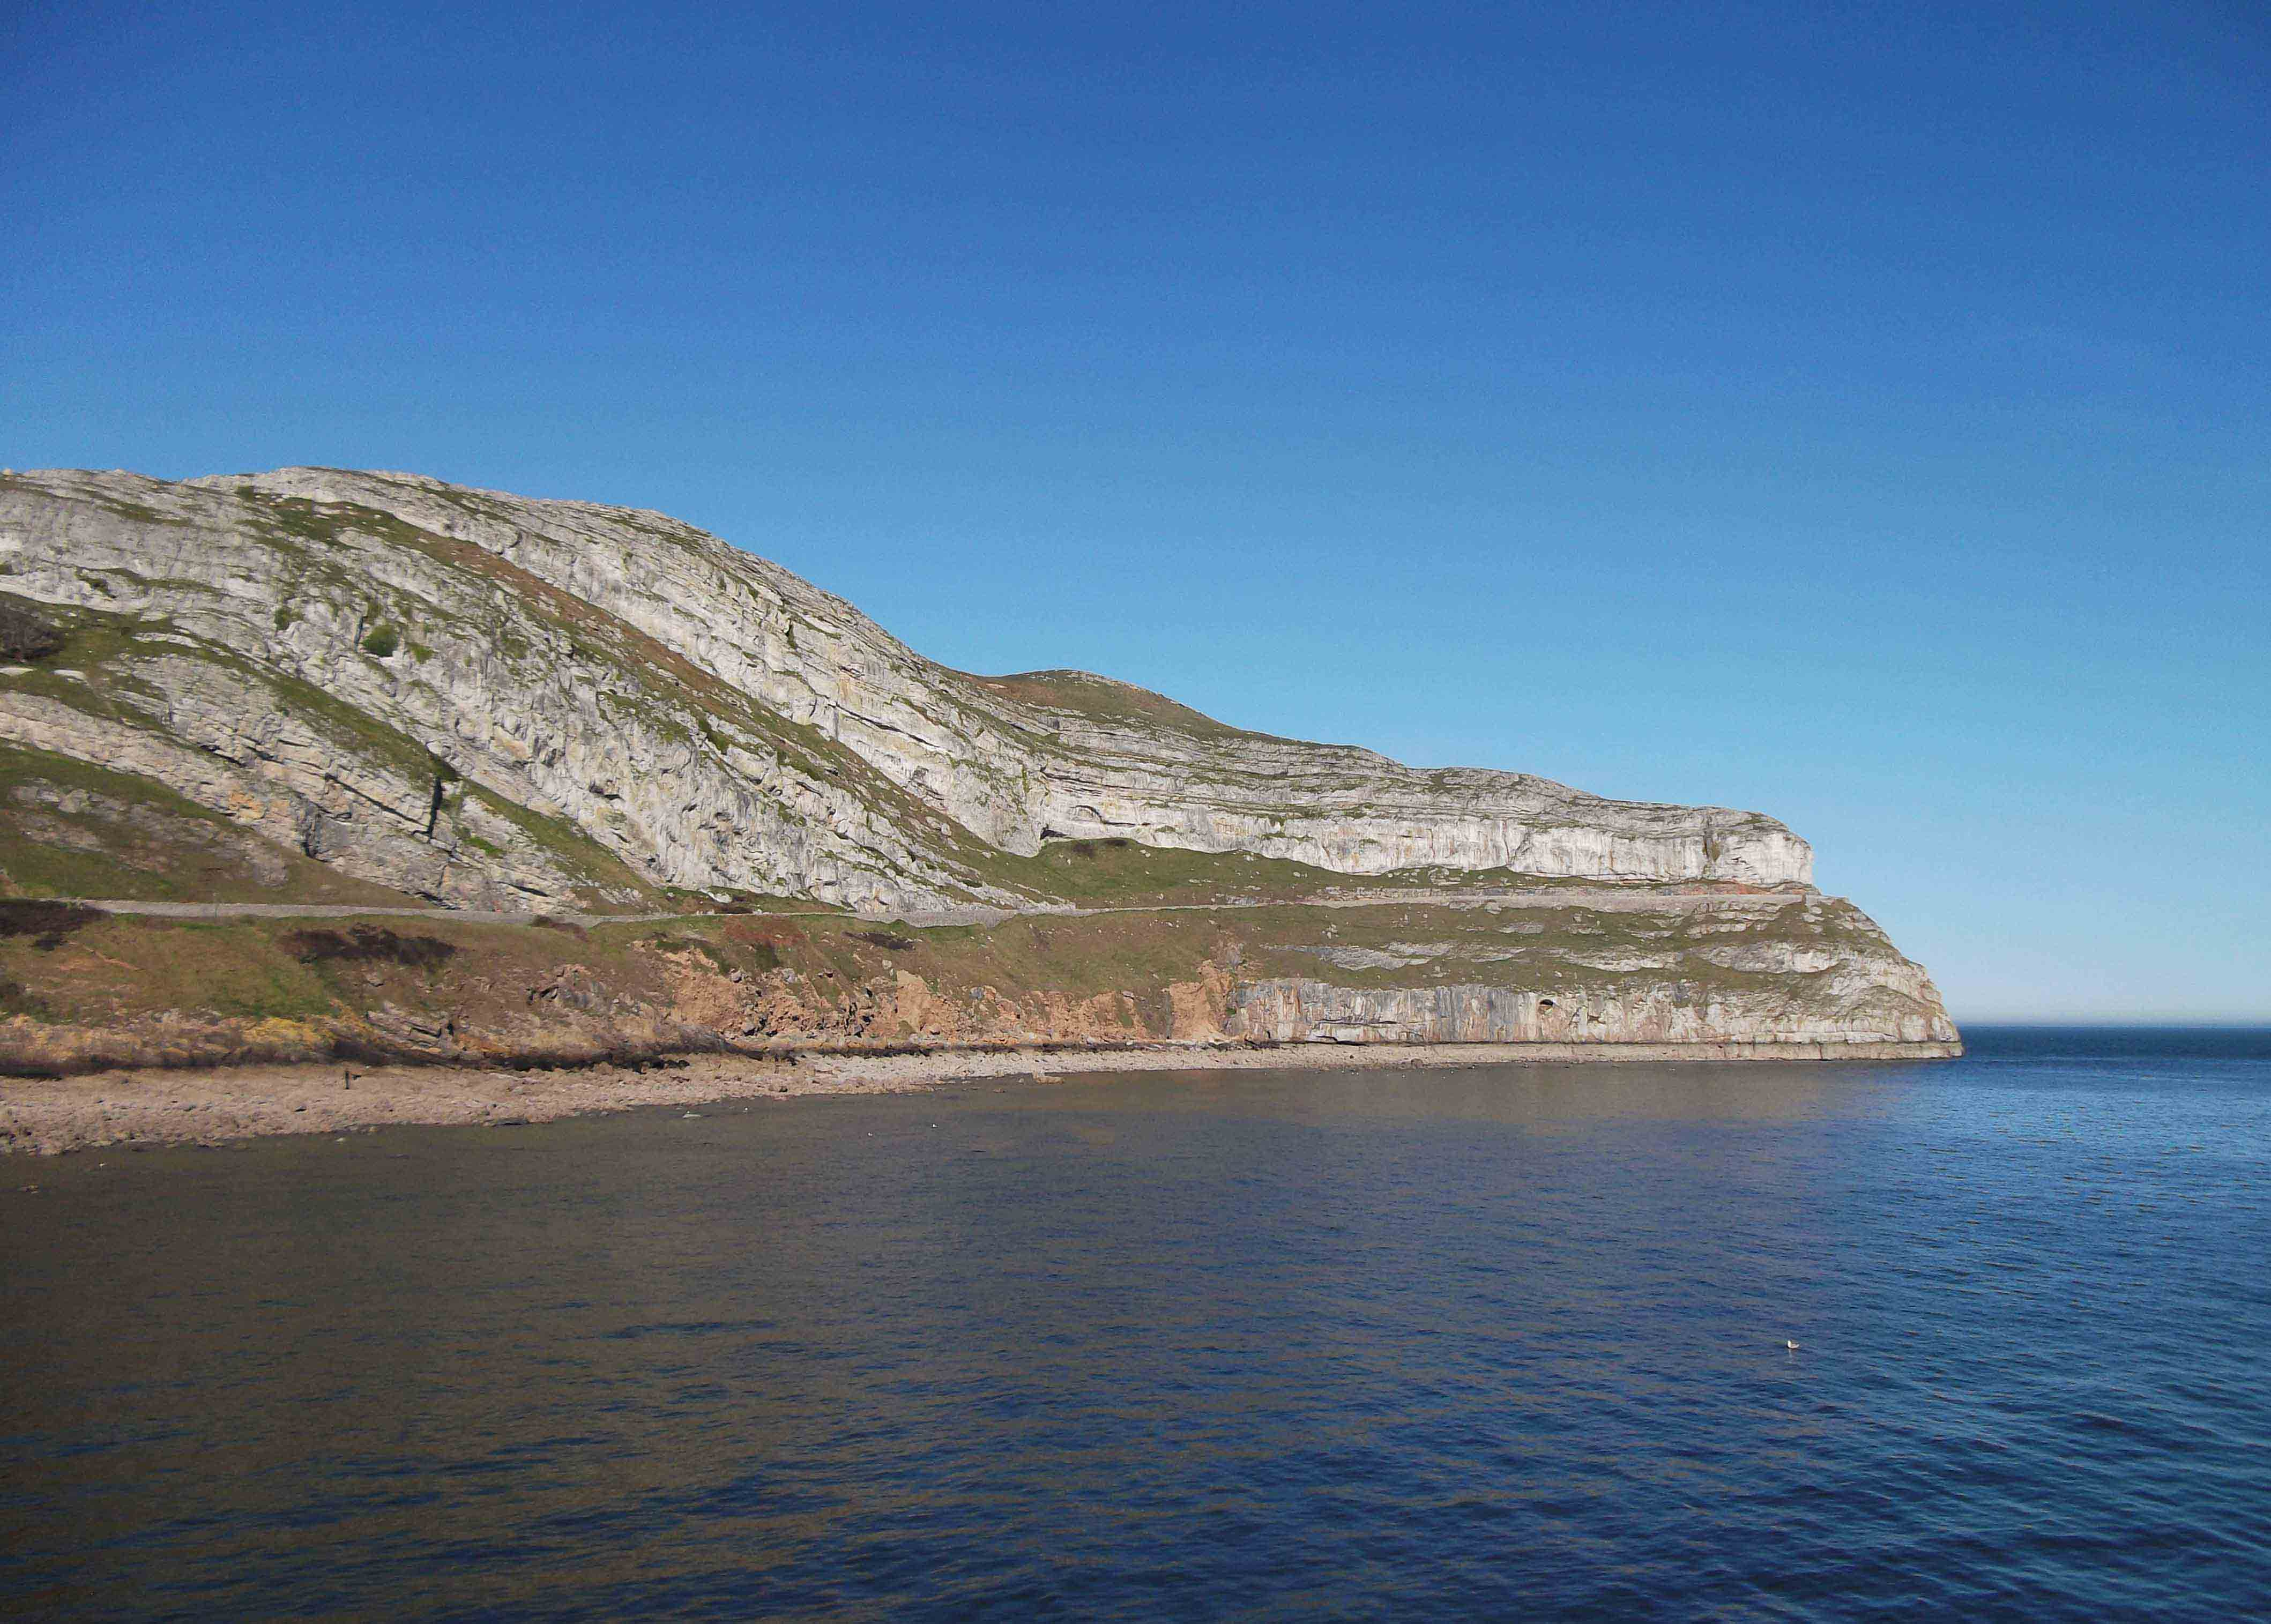 Great Orme Llandudno, The Great Orme bathed in sunshine | Llandudno Pictures